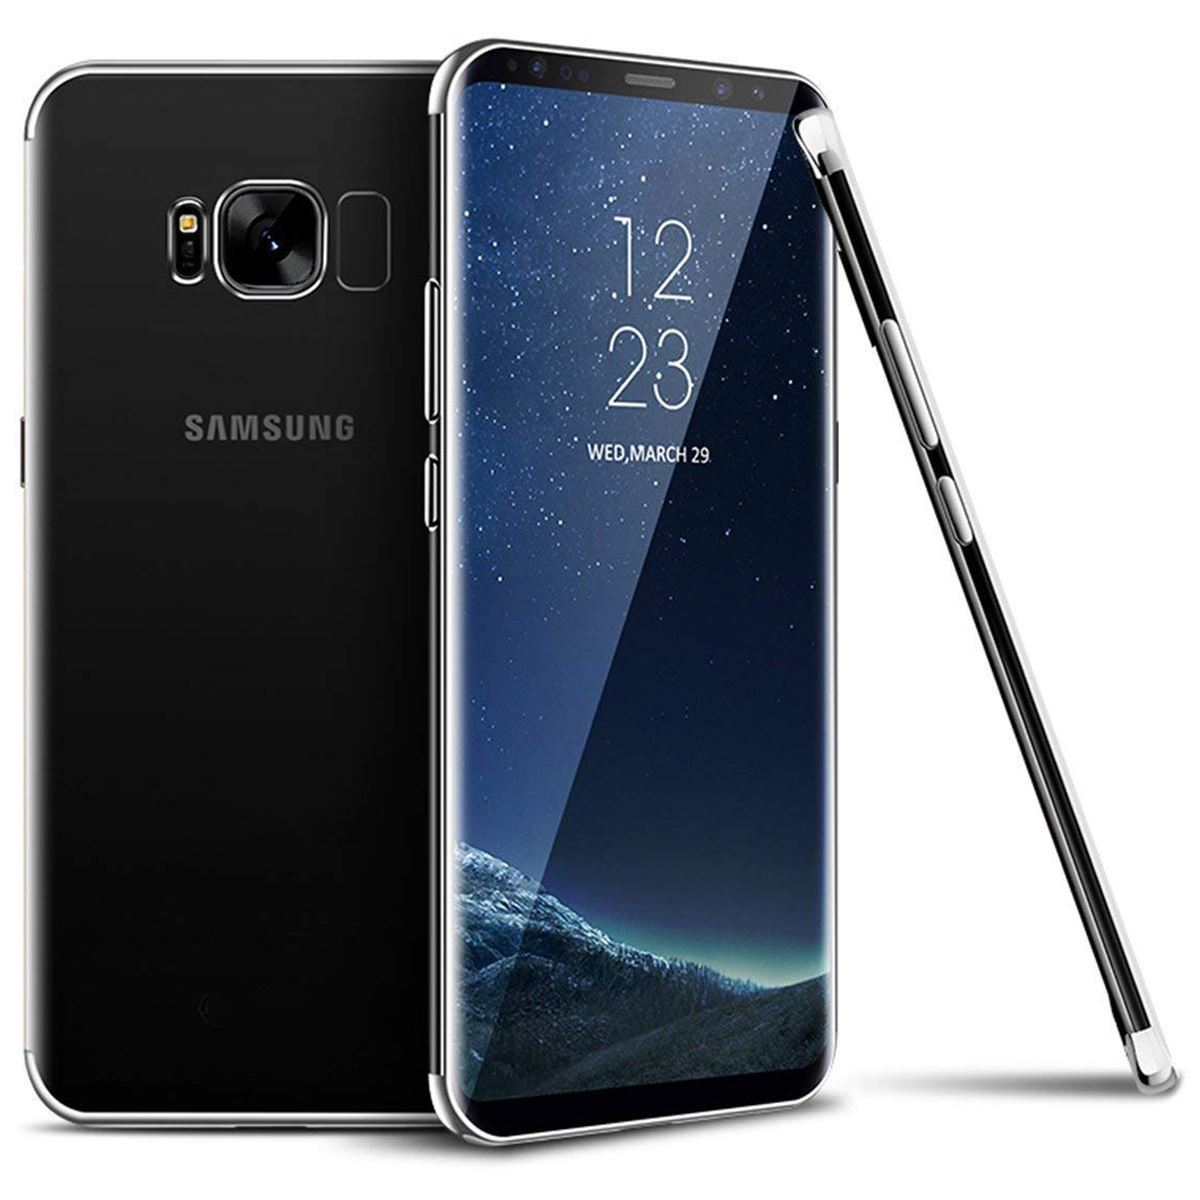 Samsung Galaxy Note 9 Case Silicone Gel Clear Cover - Silver